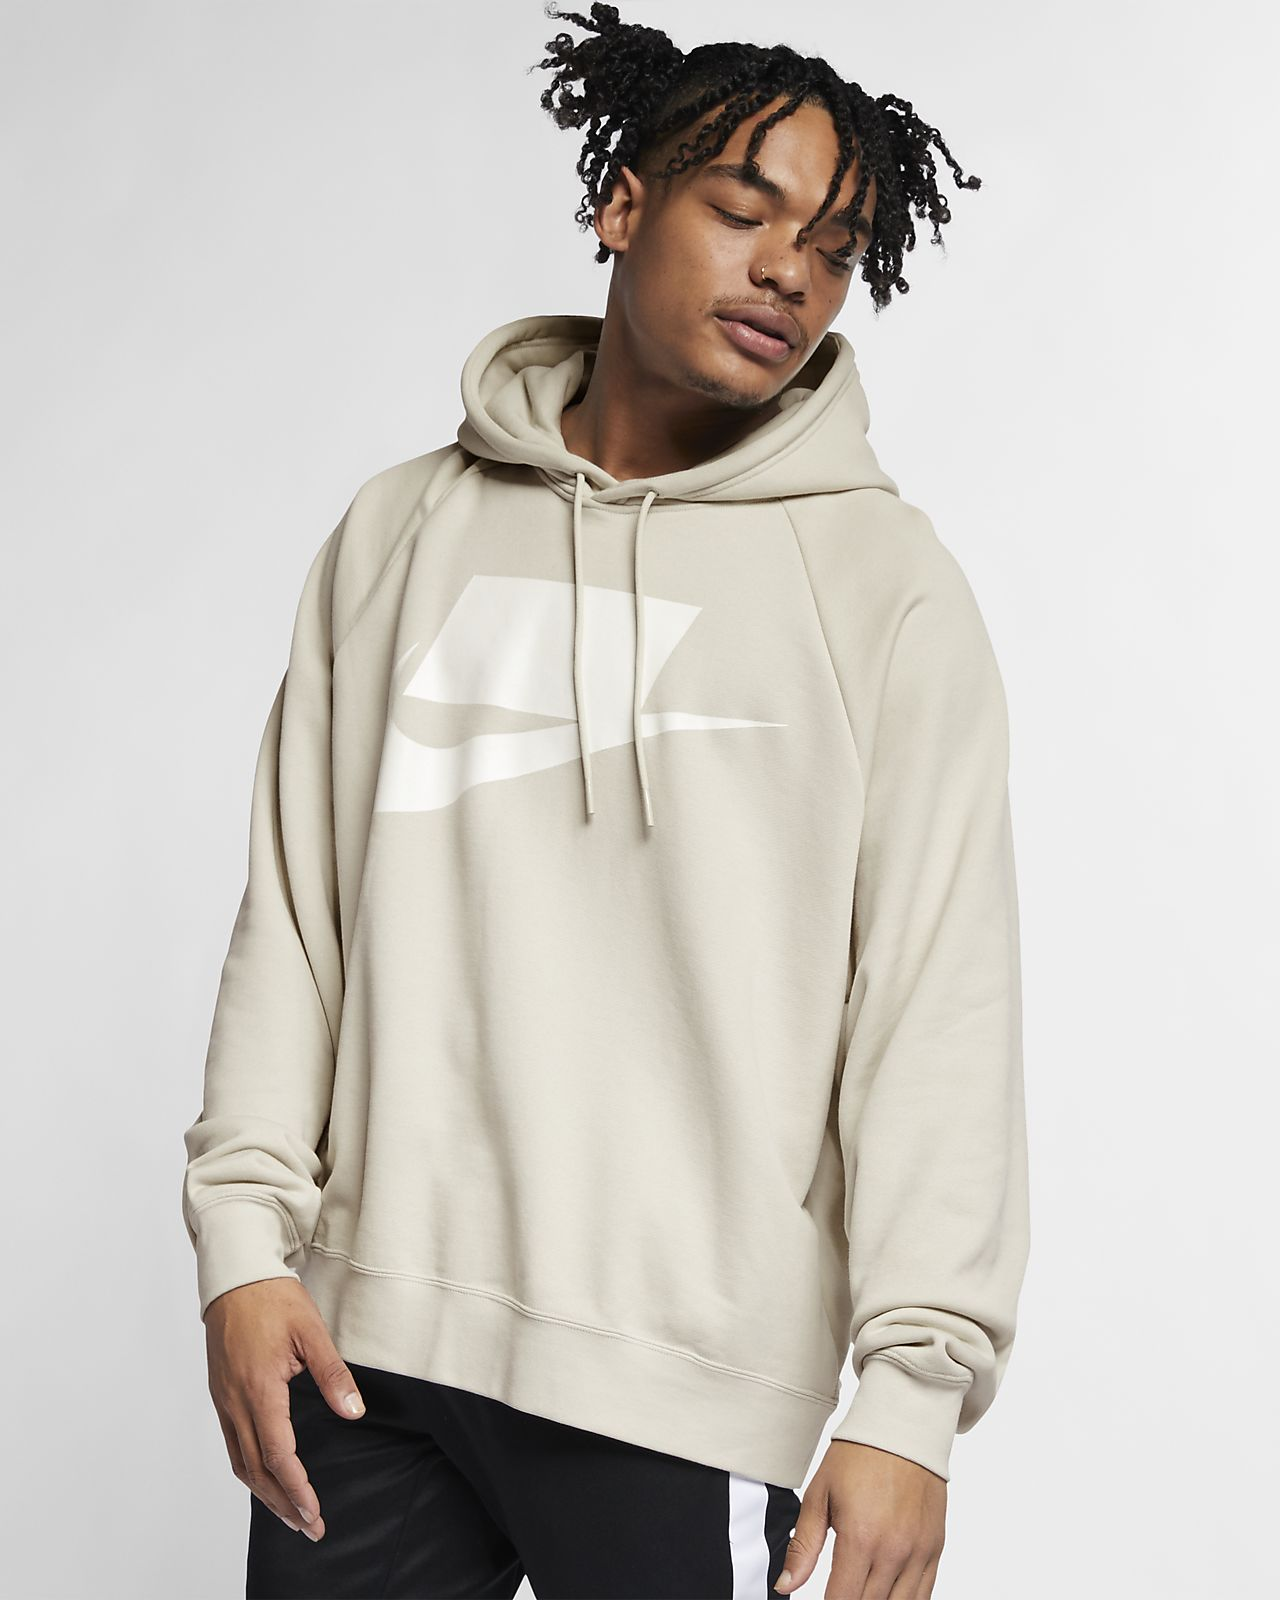 finest selection cf1f8 318e5 ... Nike Sportswear NSW French Terry Hoodie